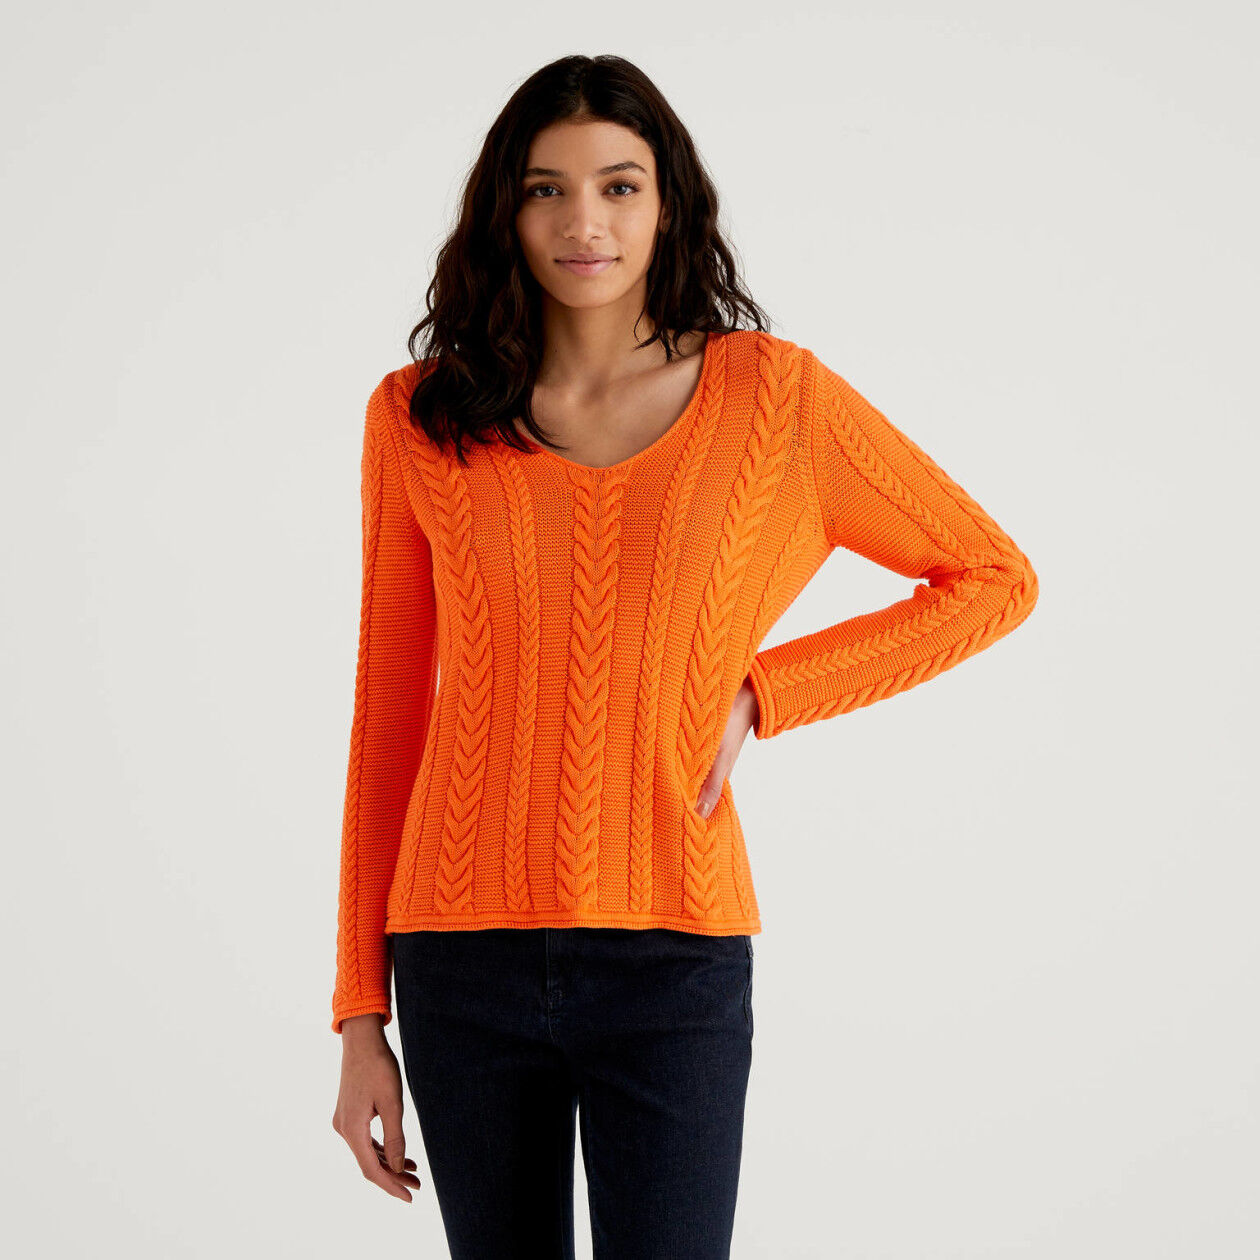 V-neck sweater with twists